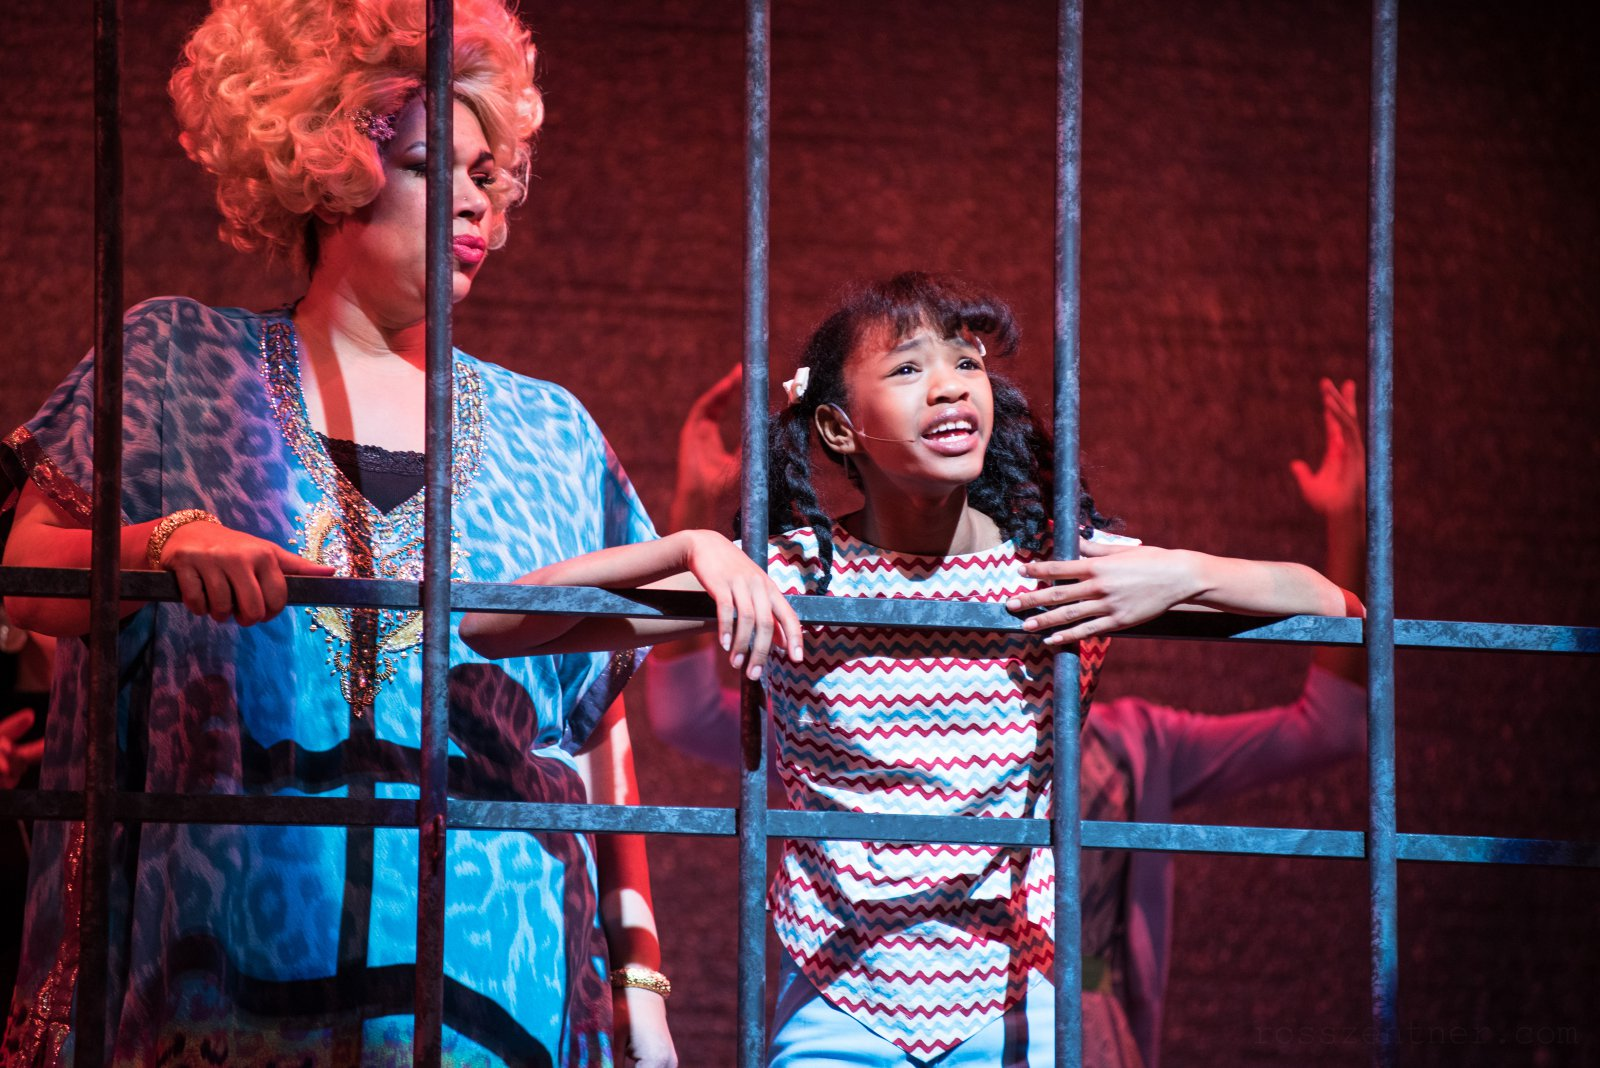 (l. to r.) Terynn Erby-Walker (Little Inez) and Bethany Thomas (Motormouth Maybelle, center) in rehearsal for Skylight Music Theatre's production of Hairspray November 16 – December 30.